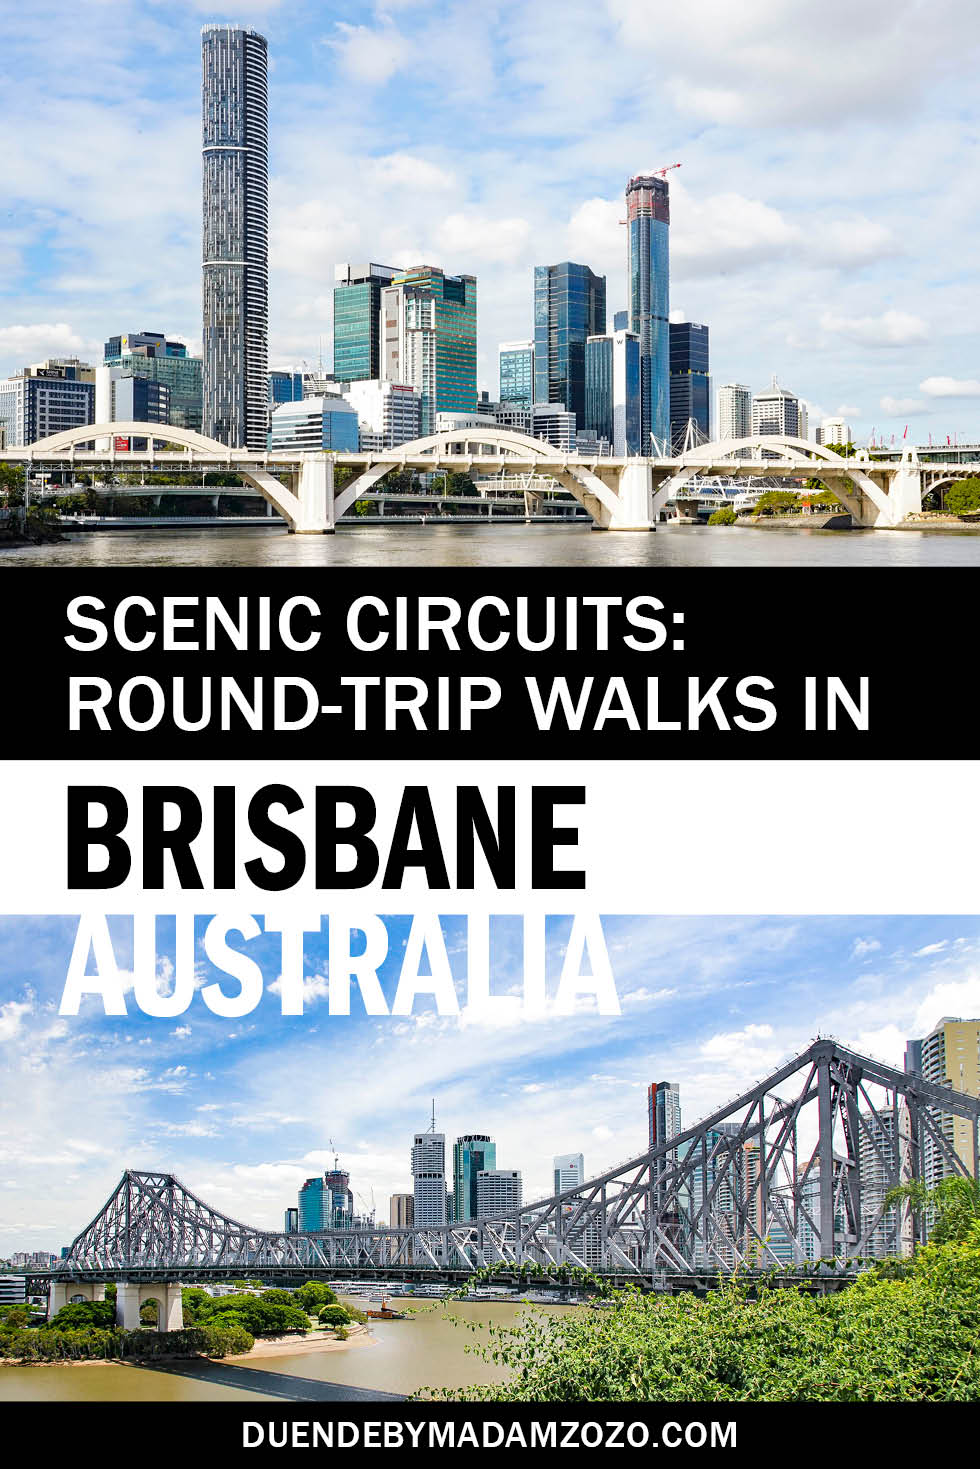 Round-Trip Walks in Brisbane